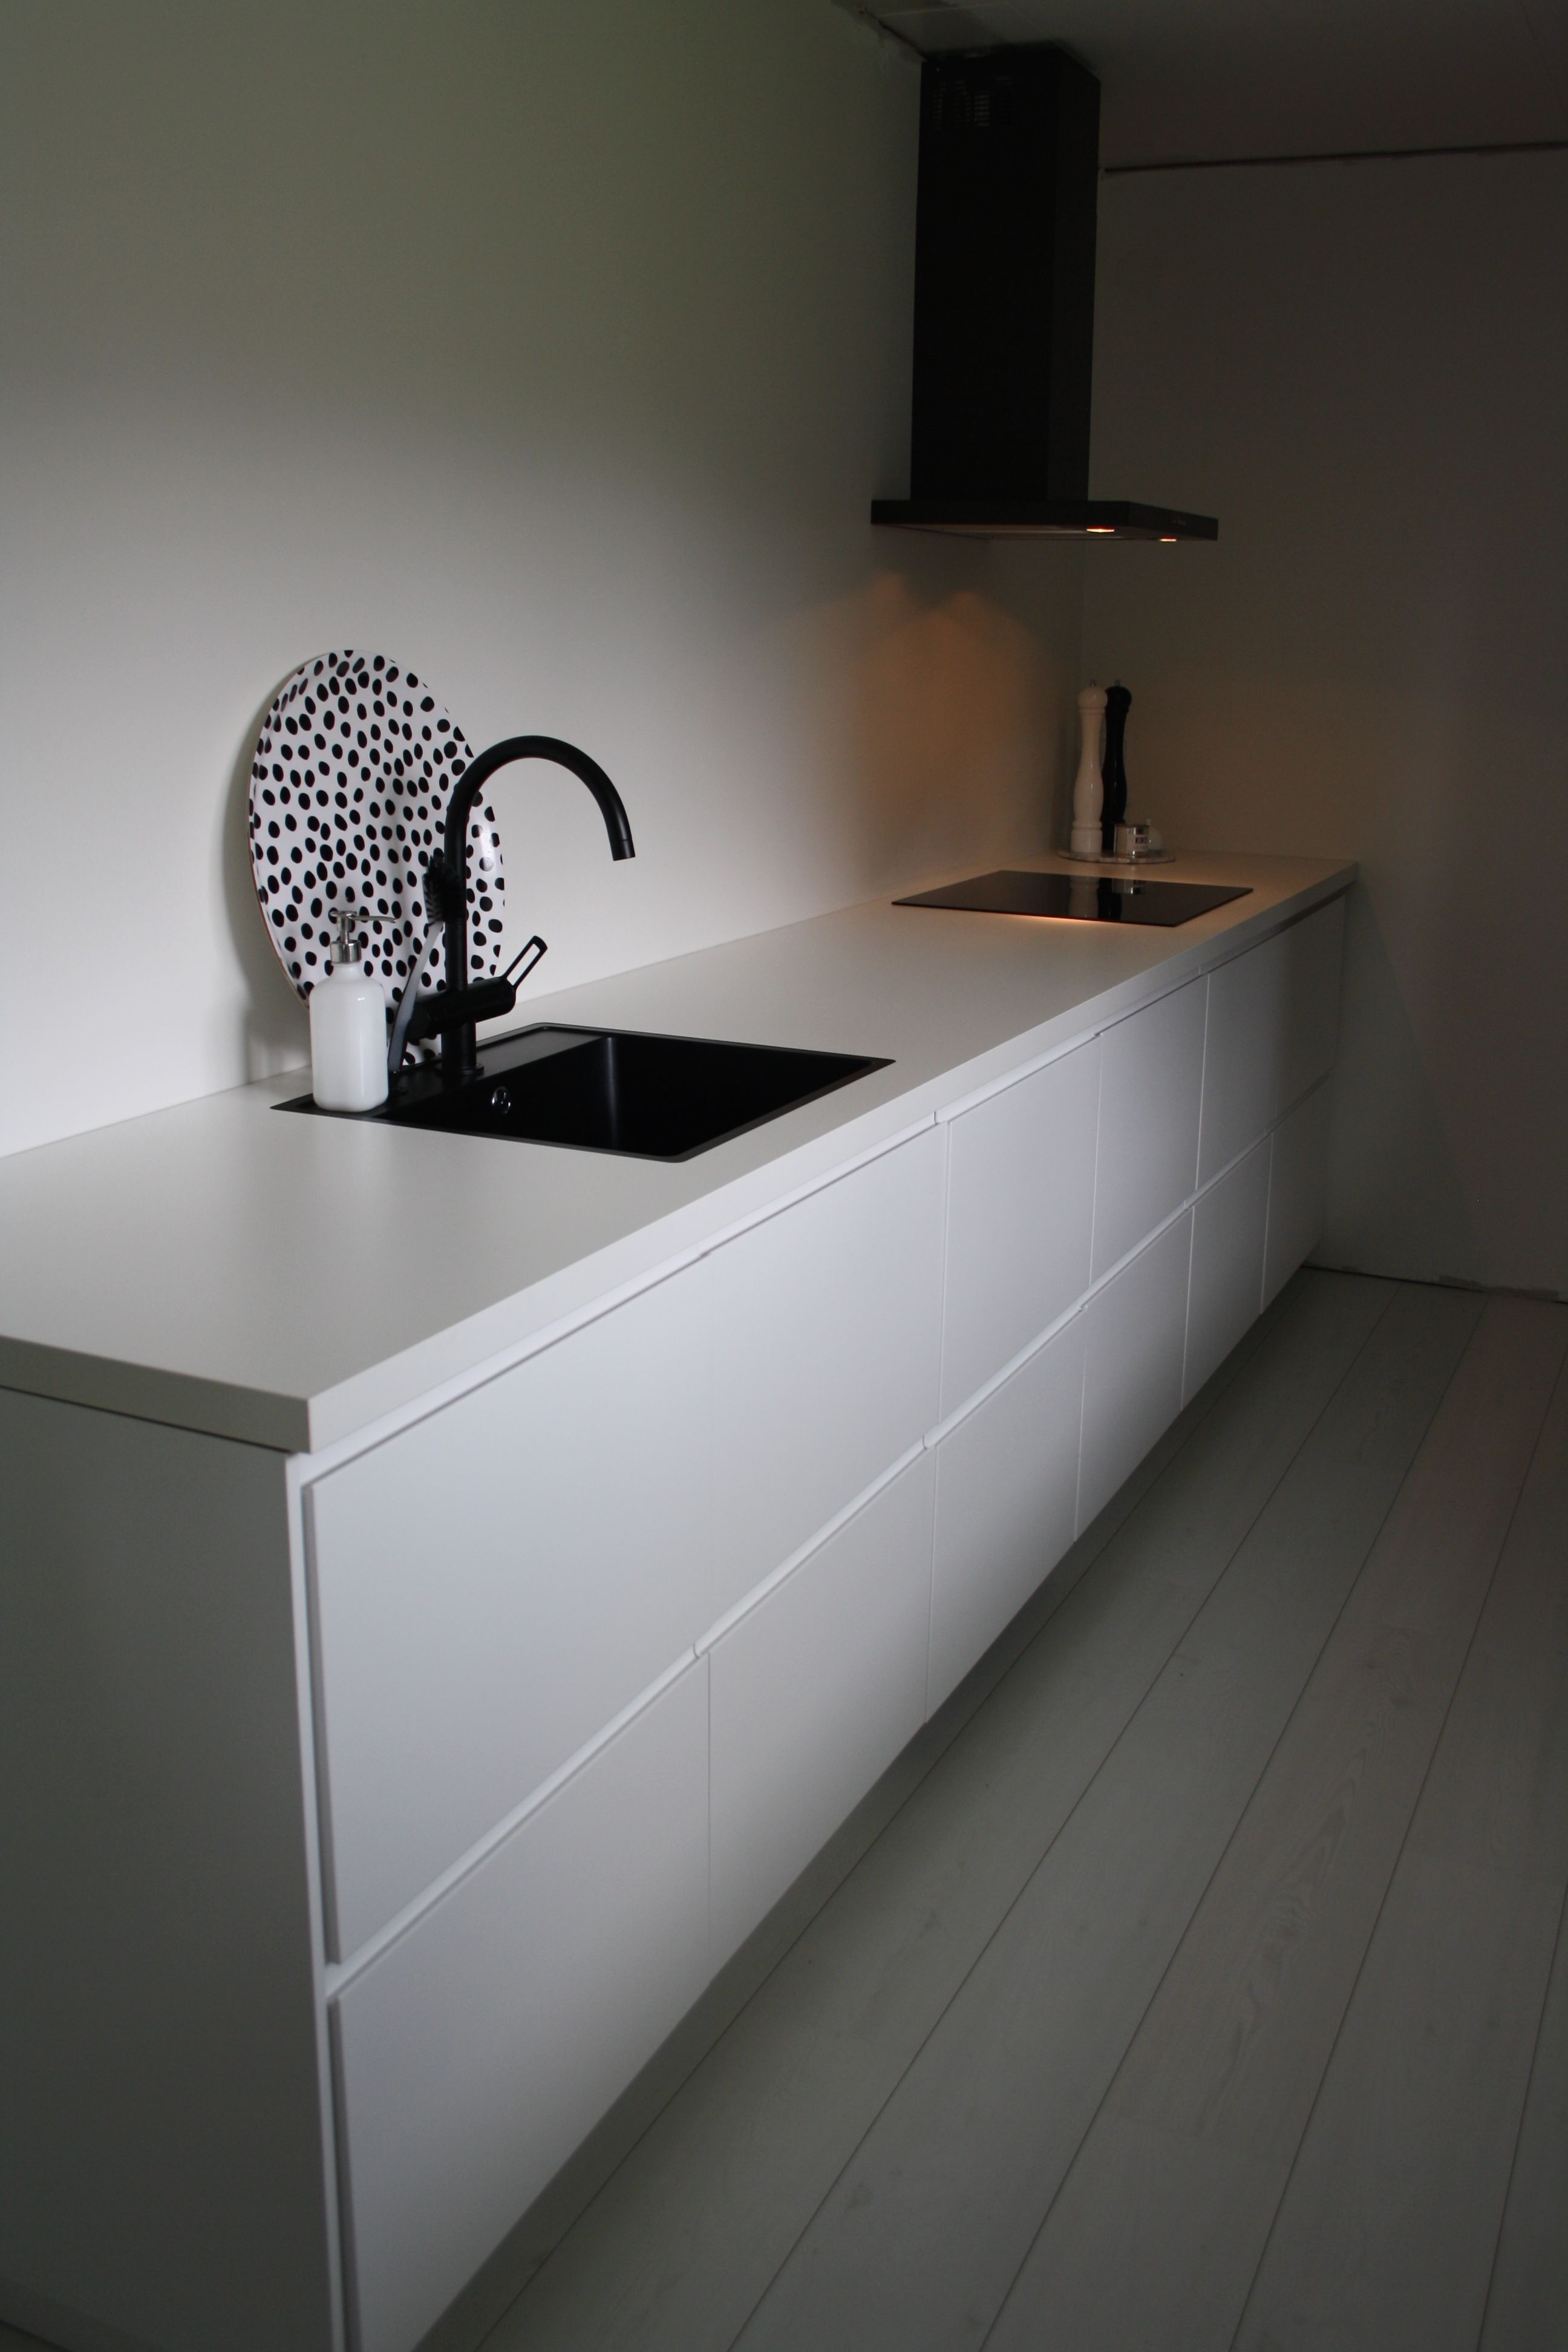 Ikea Küchenfronten Voxtorp Ikea Voxtorp Kitchen Pinterest